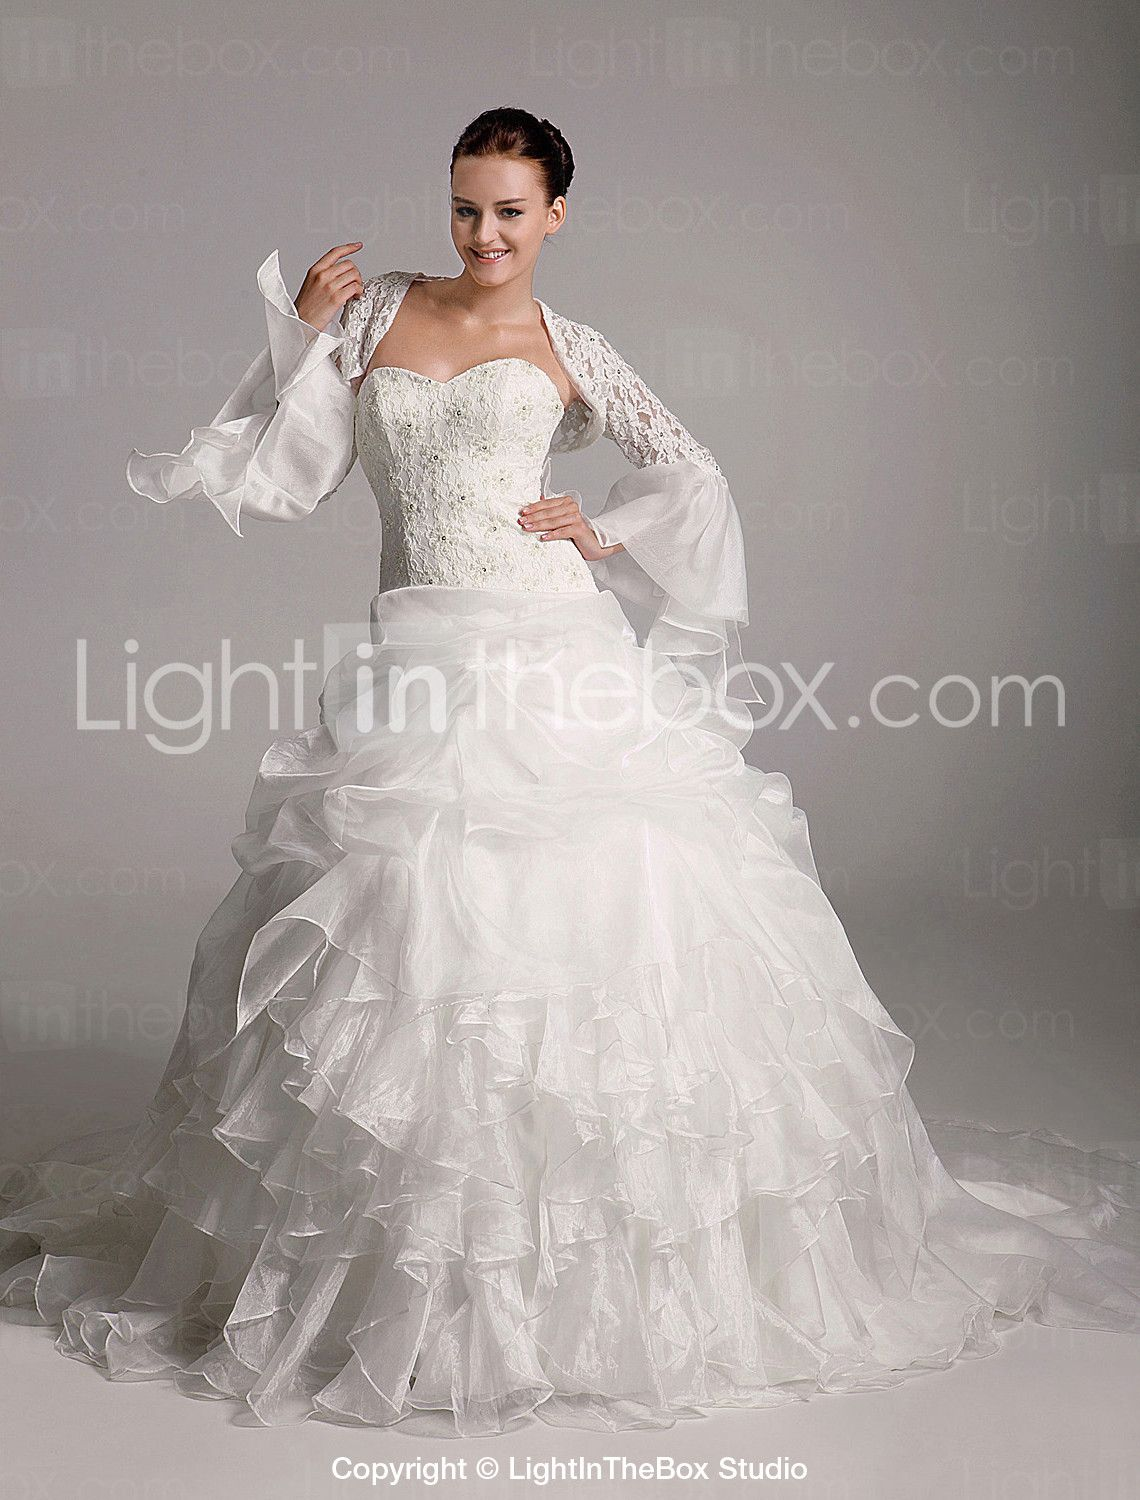 Ball Gown Sweetheart Court Train Organza Tiered Wedding Dress with Wrap - US$ 318.49